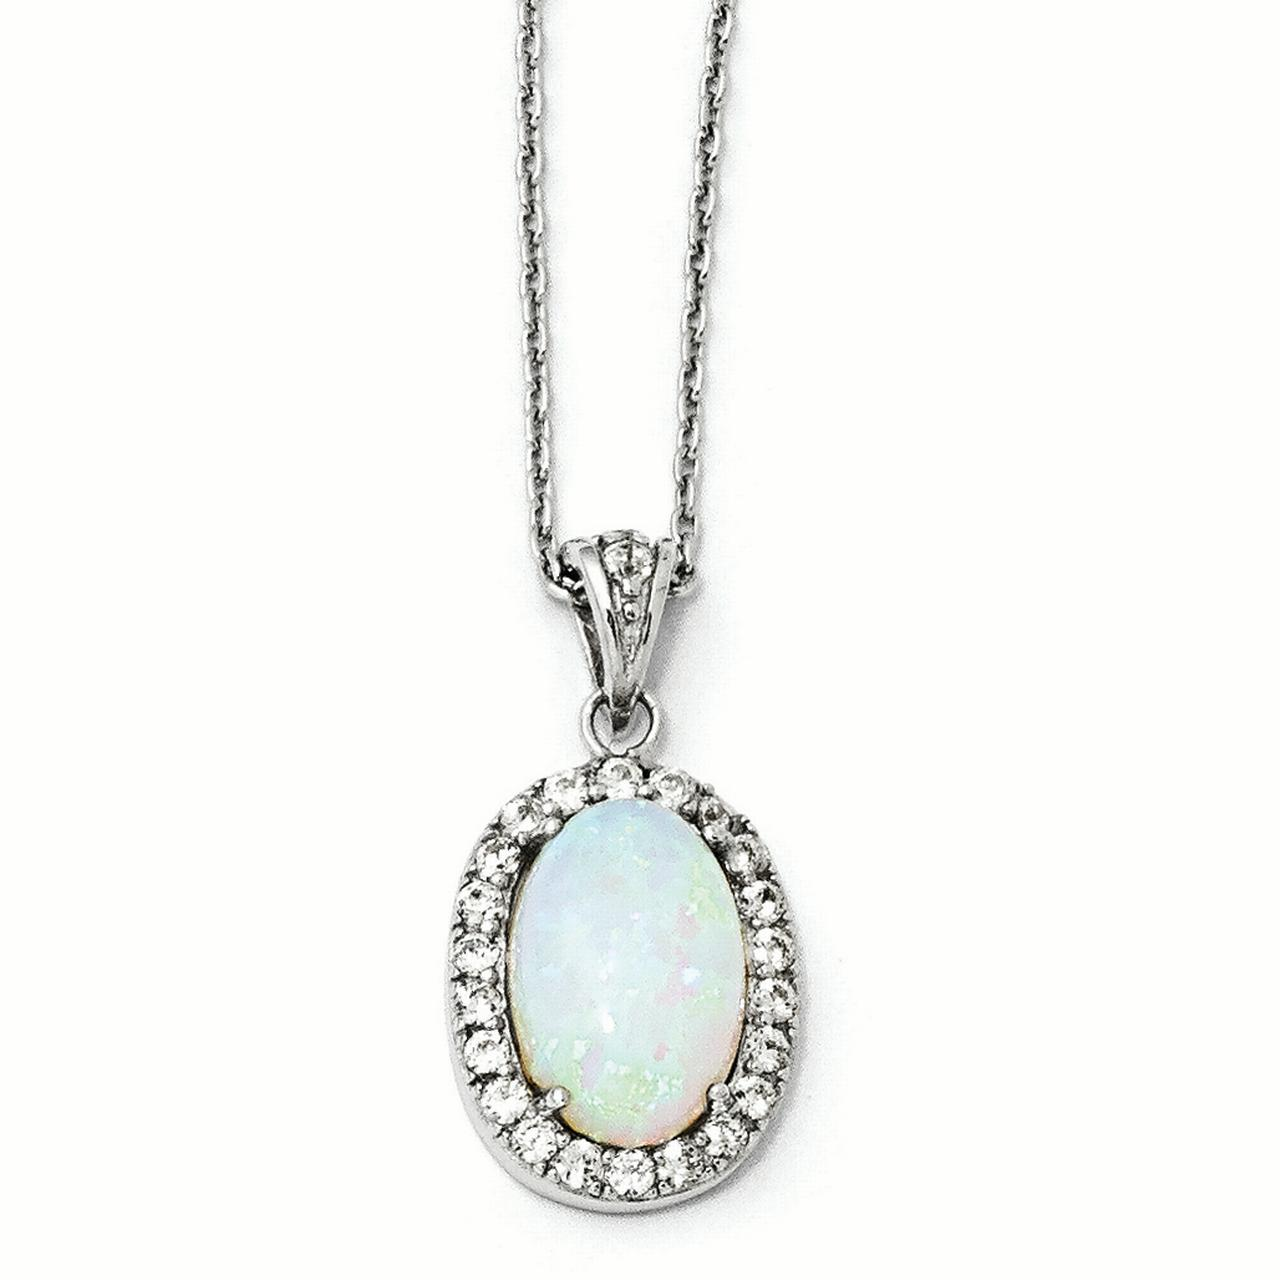 Cheryl M Sterling Silver Synthetic Opal & Cubic Zirconia Pendant Necklace by Kevin Jewelers